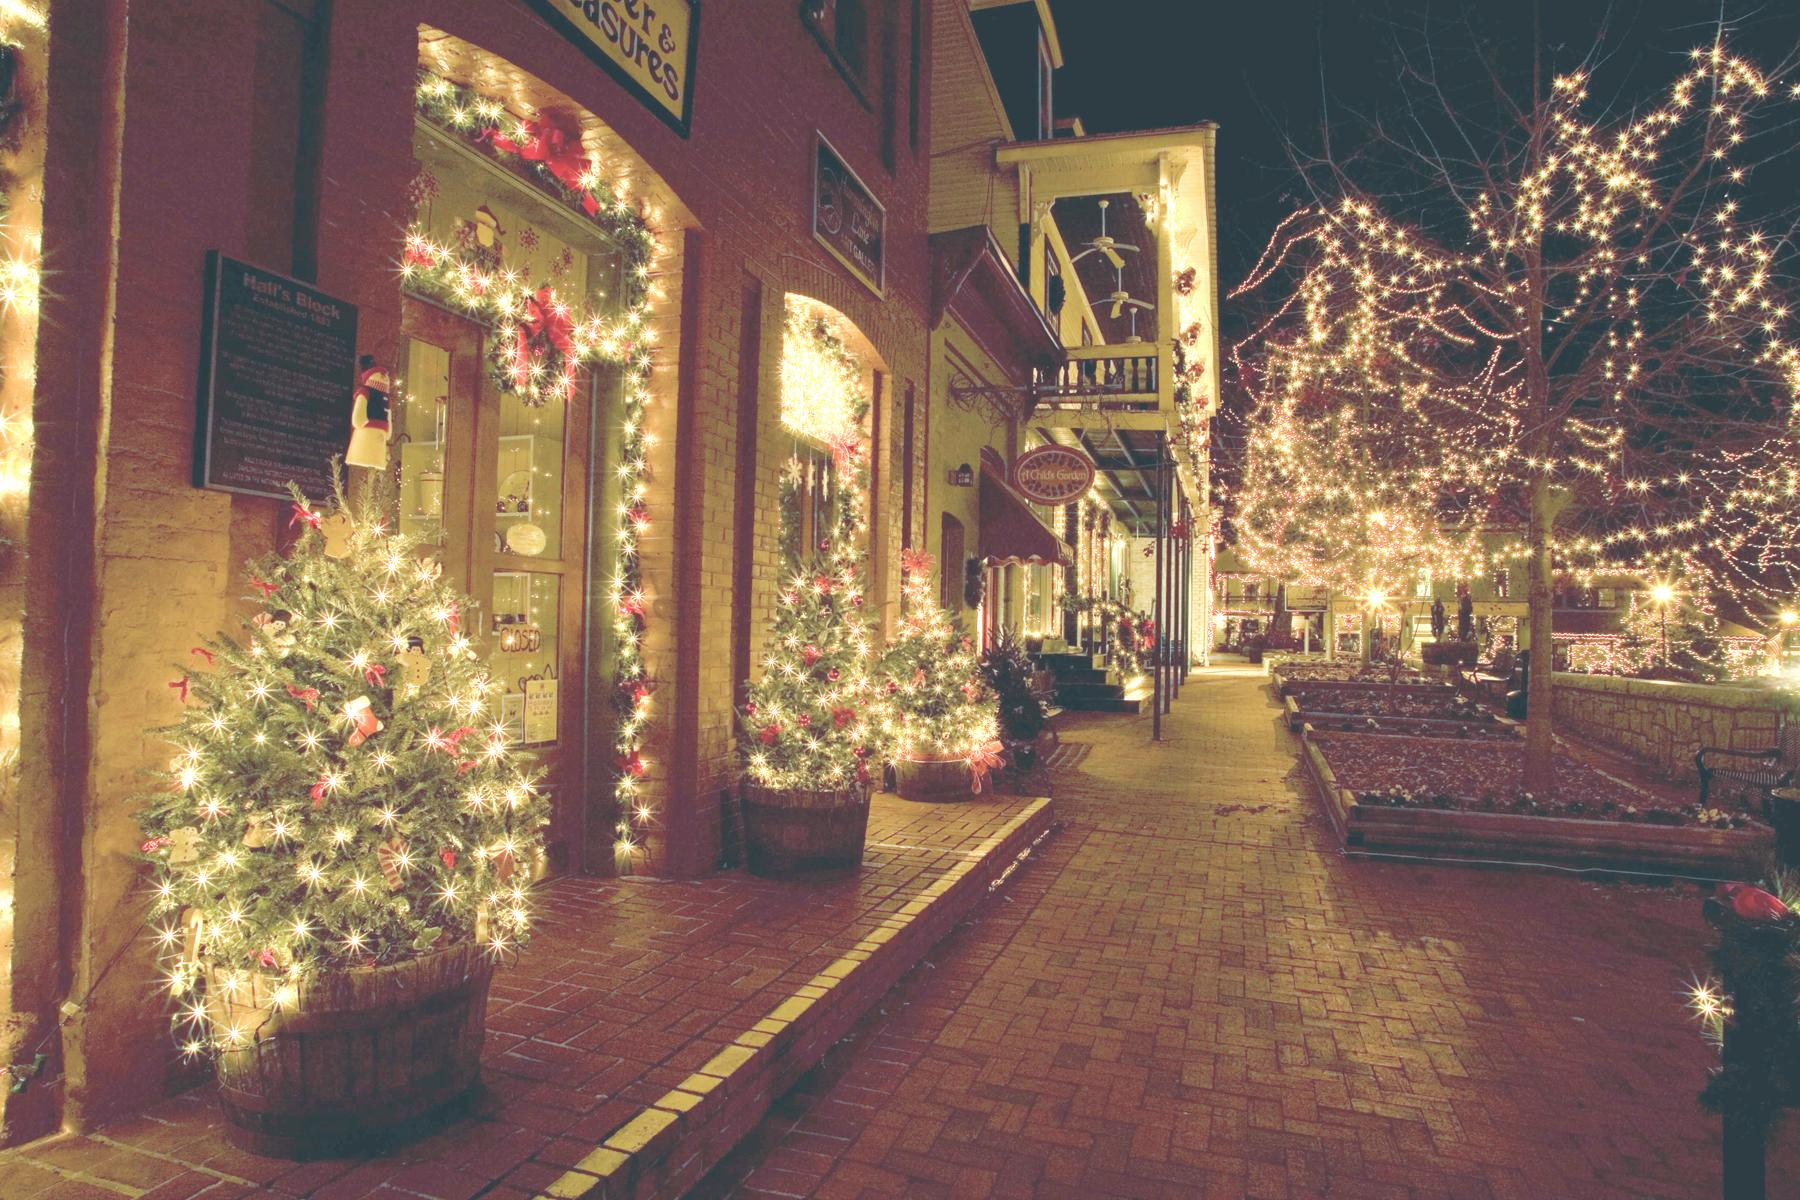 Christmas Town In Georgia Dahlonega.15 Christmas Obsessed Towns